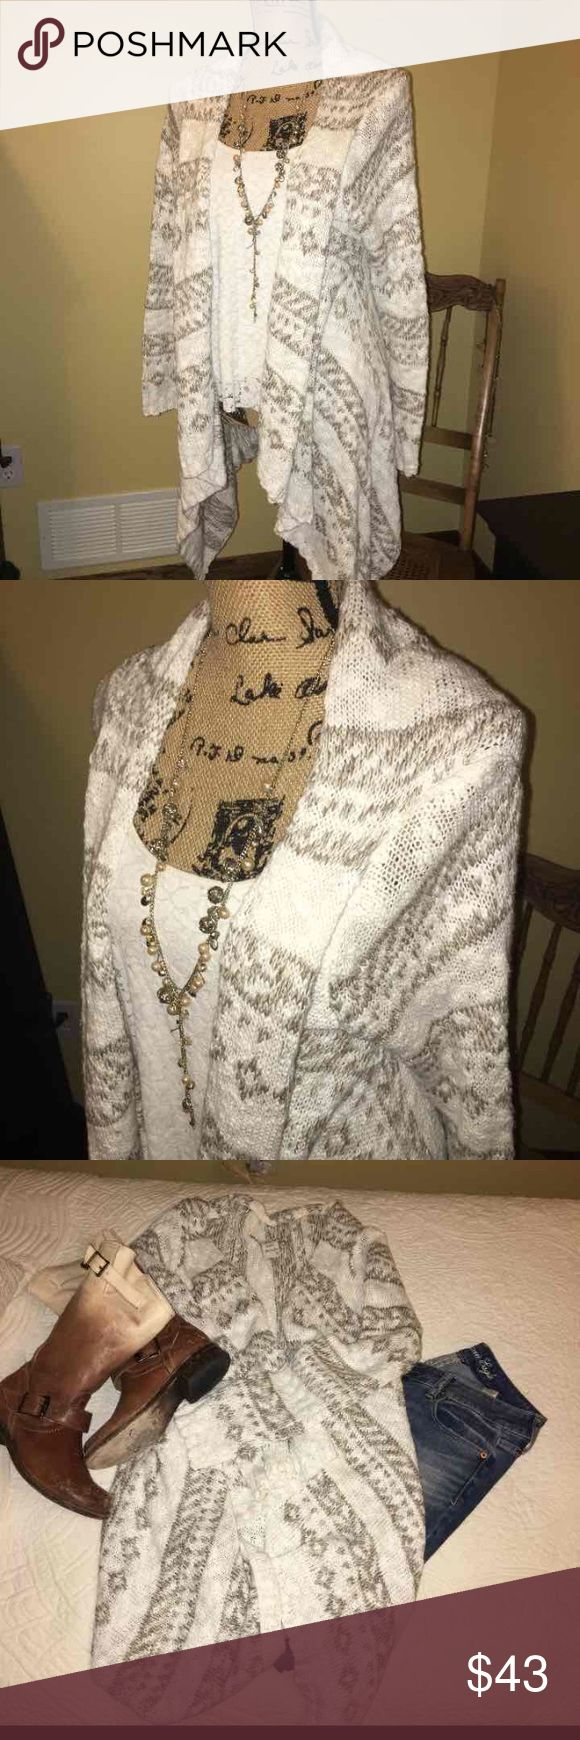 Women's American Rag outerwear cardigan Women's American Rag cardigan. Size small. Brand new condition. Worn once. Off white and taupe color. American Rag Sweaters Cardigans